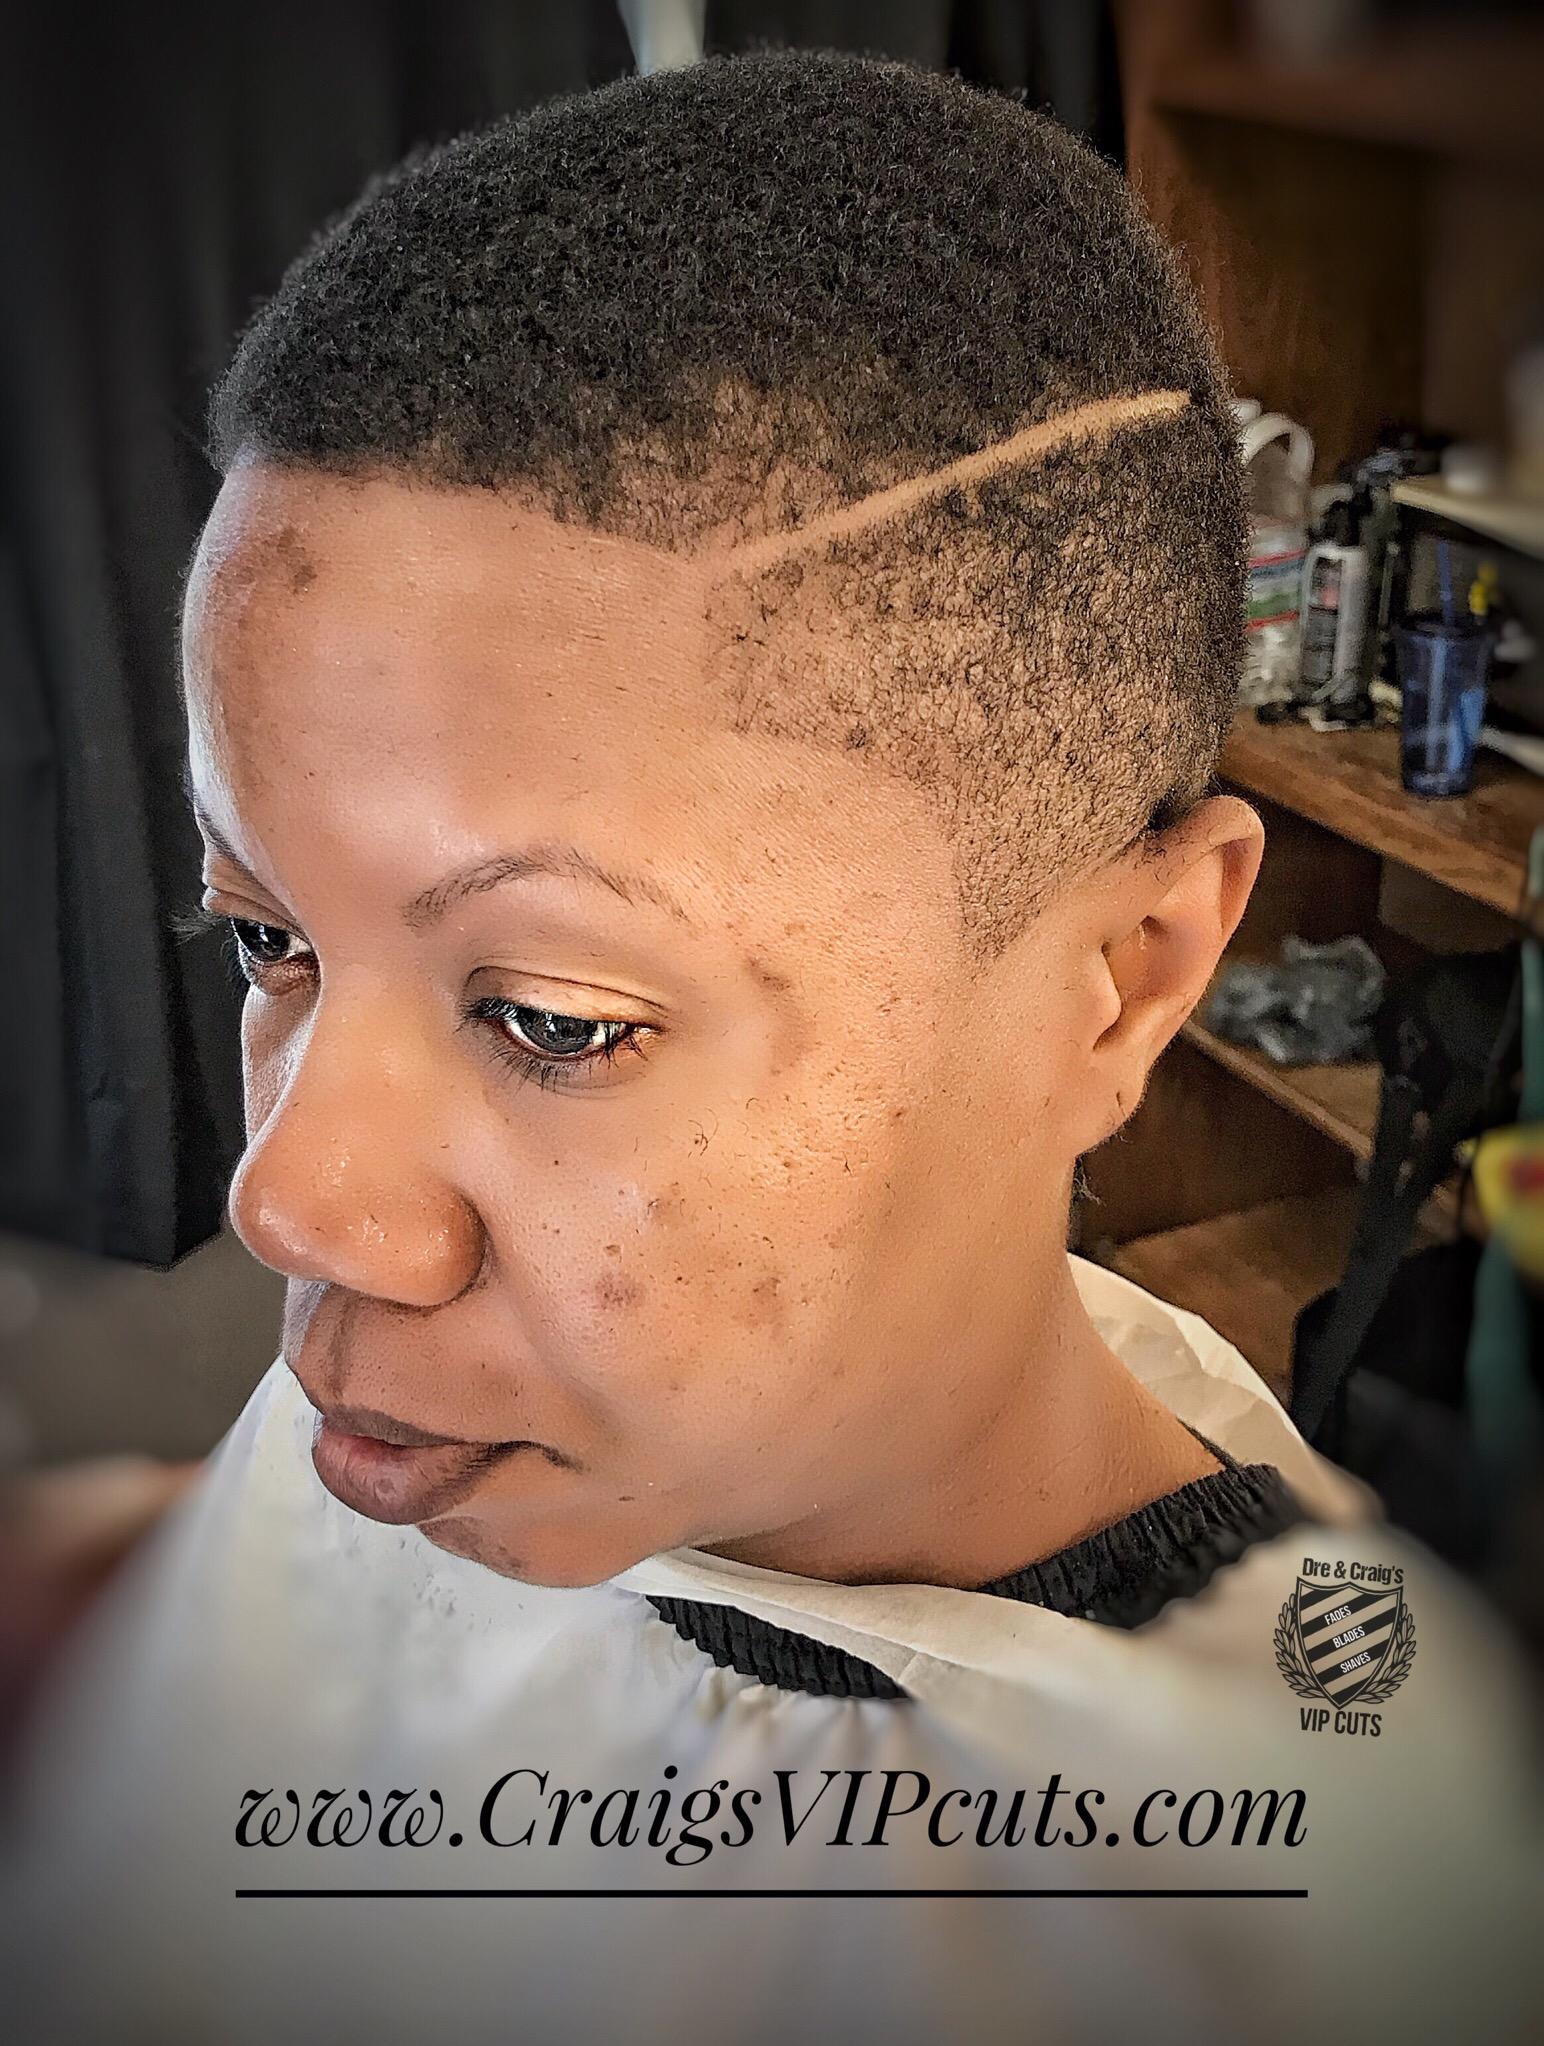 Women Taper Wpart July 2017 Dre Craigs Vip Cuts